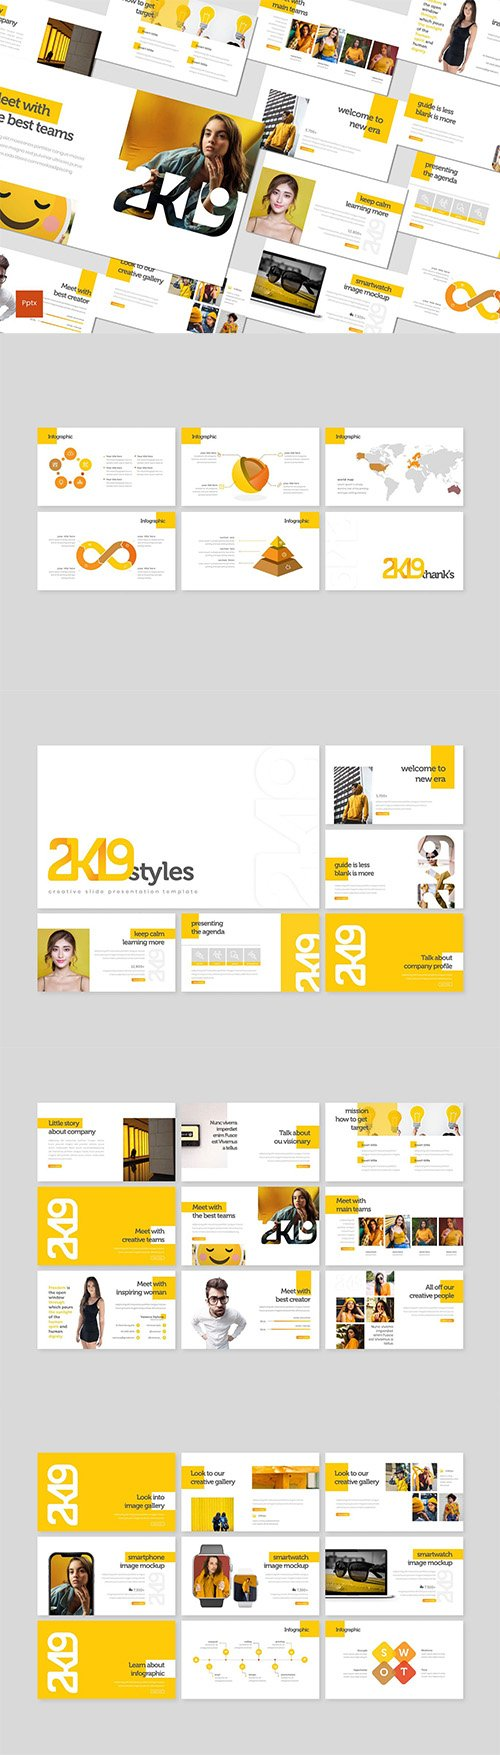 2k19 - Powerpoint, Keynote and Google Slides Templates